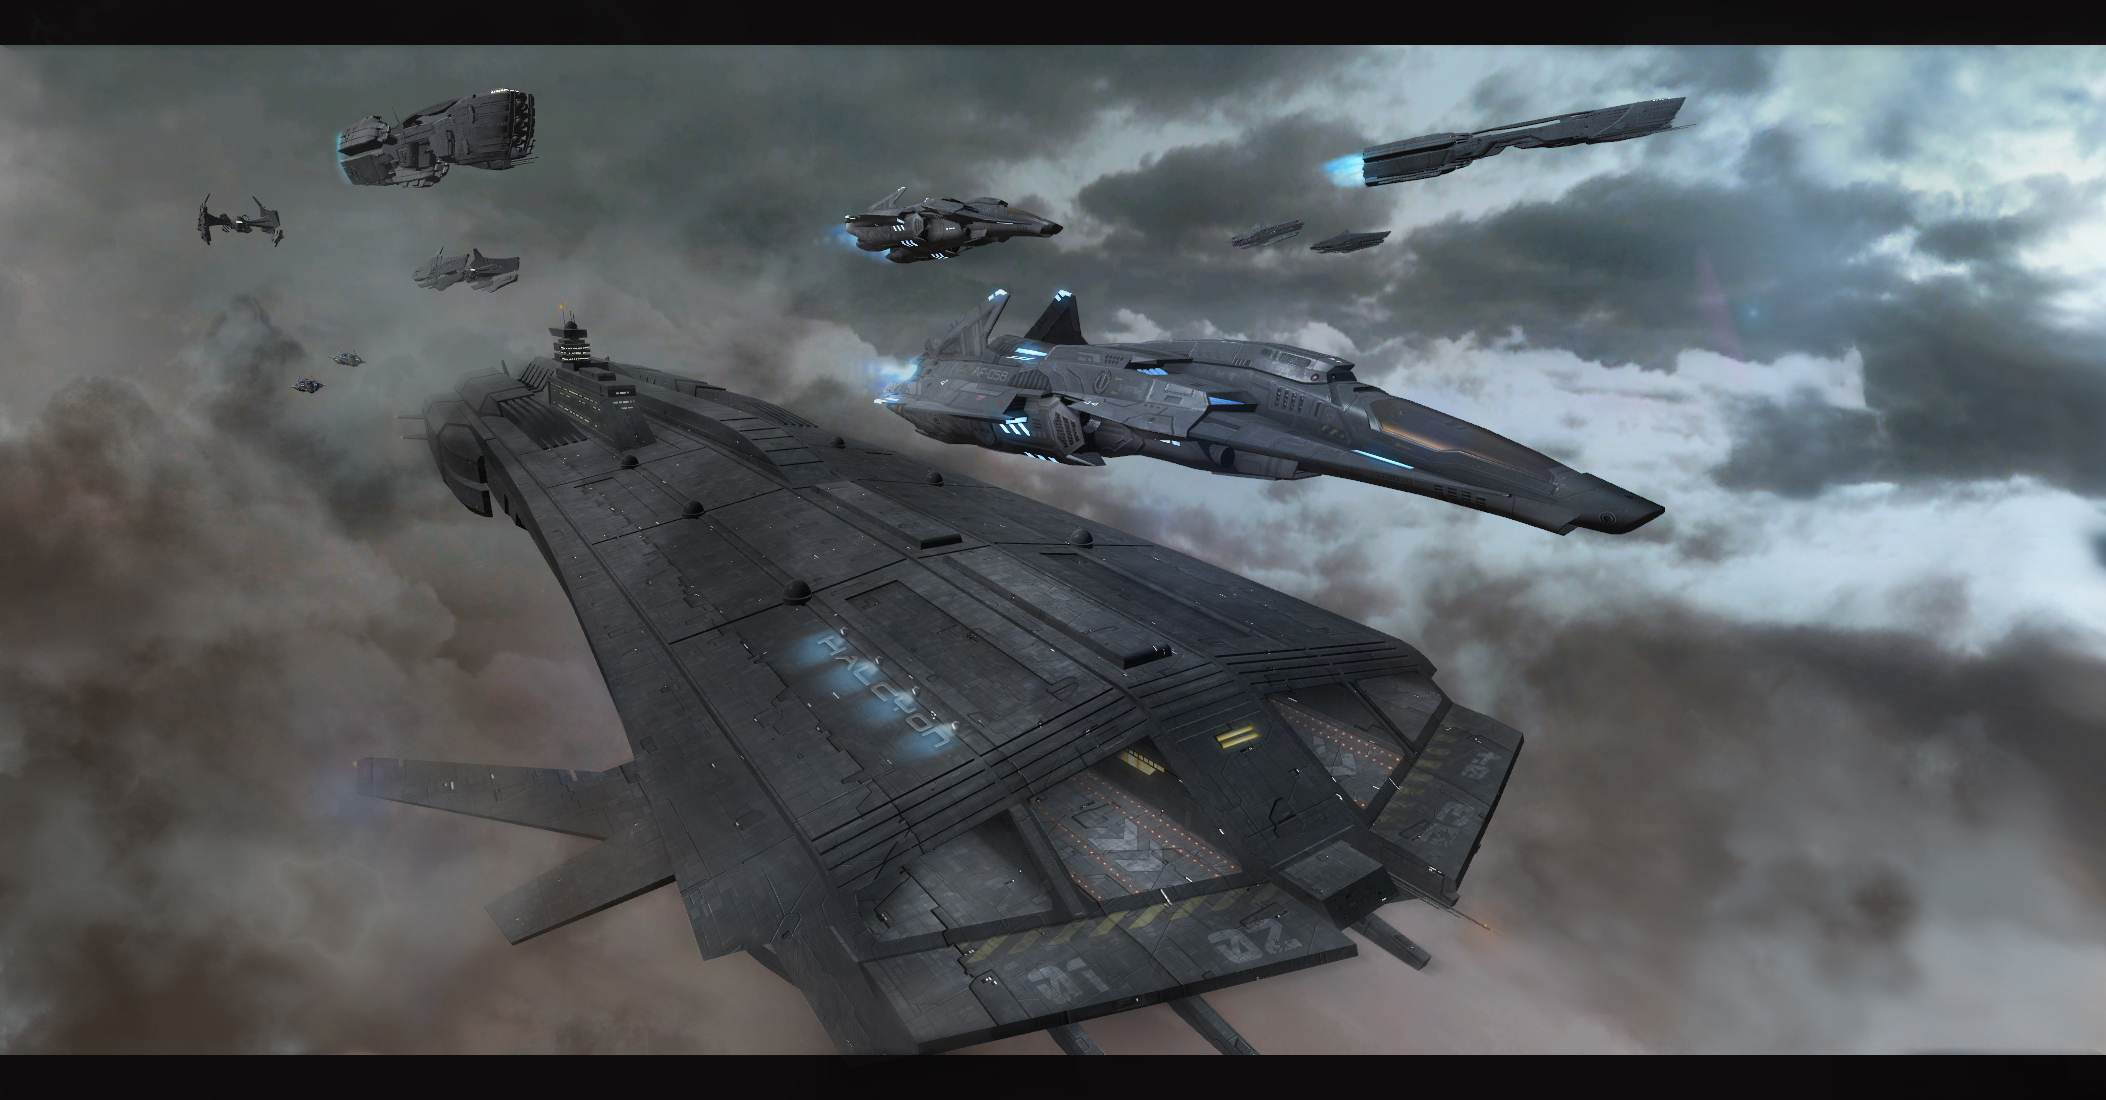 Spaceships image - Inf...